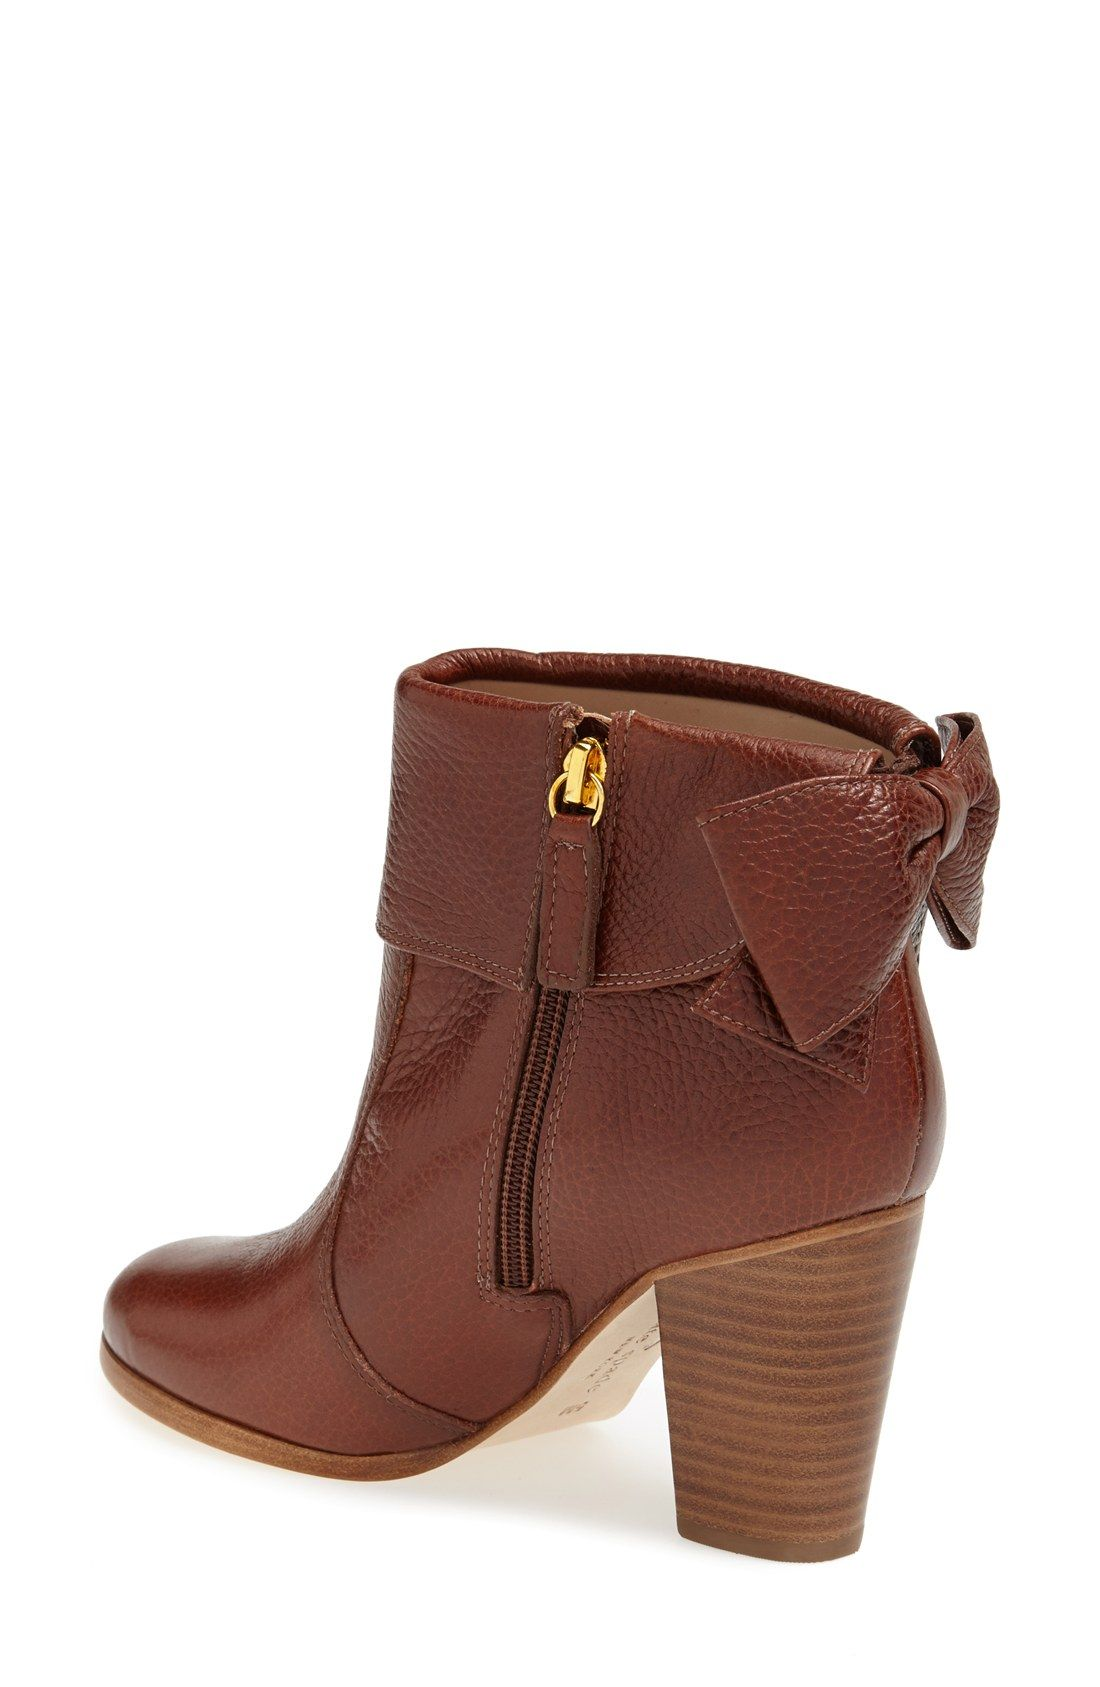 75f0b6f33b5203 The prettiest Kate Spade leather bow boot. Brown Dress Boots, Dress With  Boots,